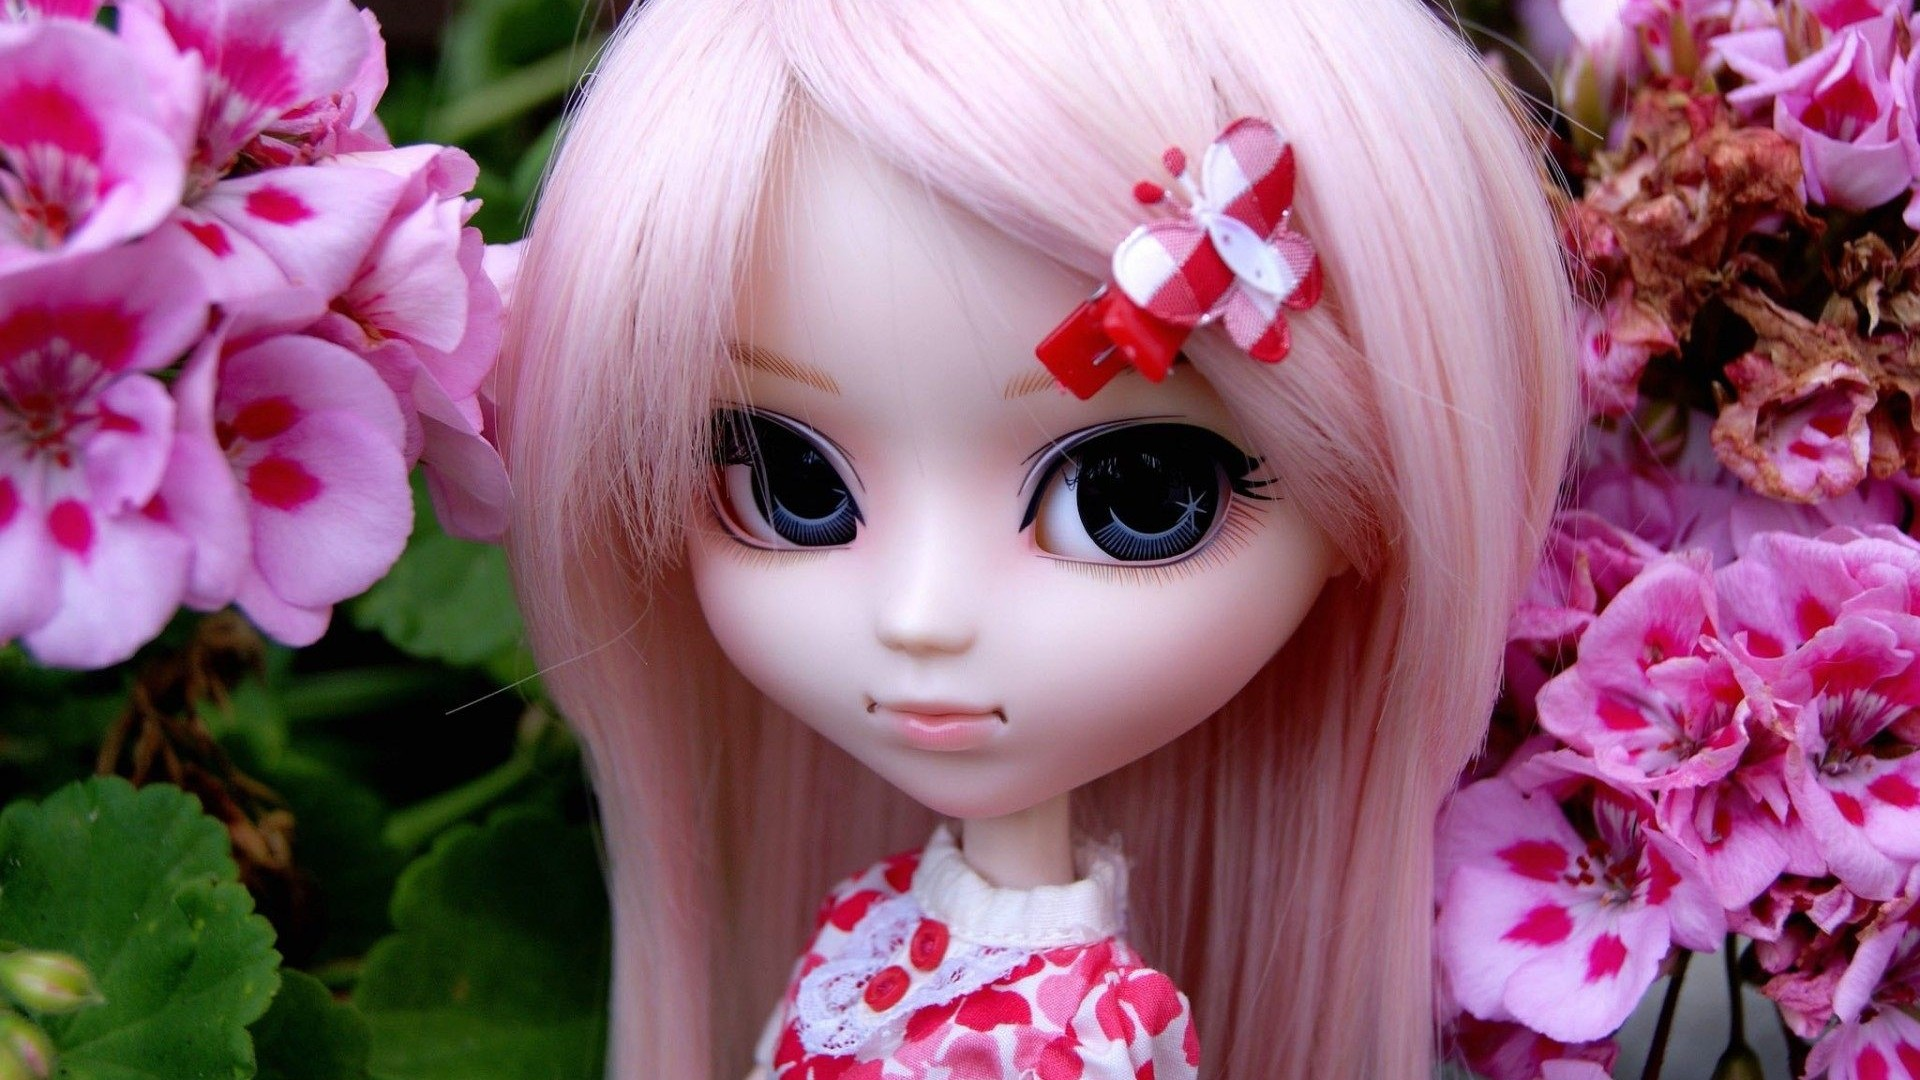 wallpapers of cute dolls free download